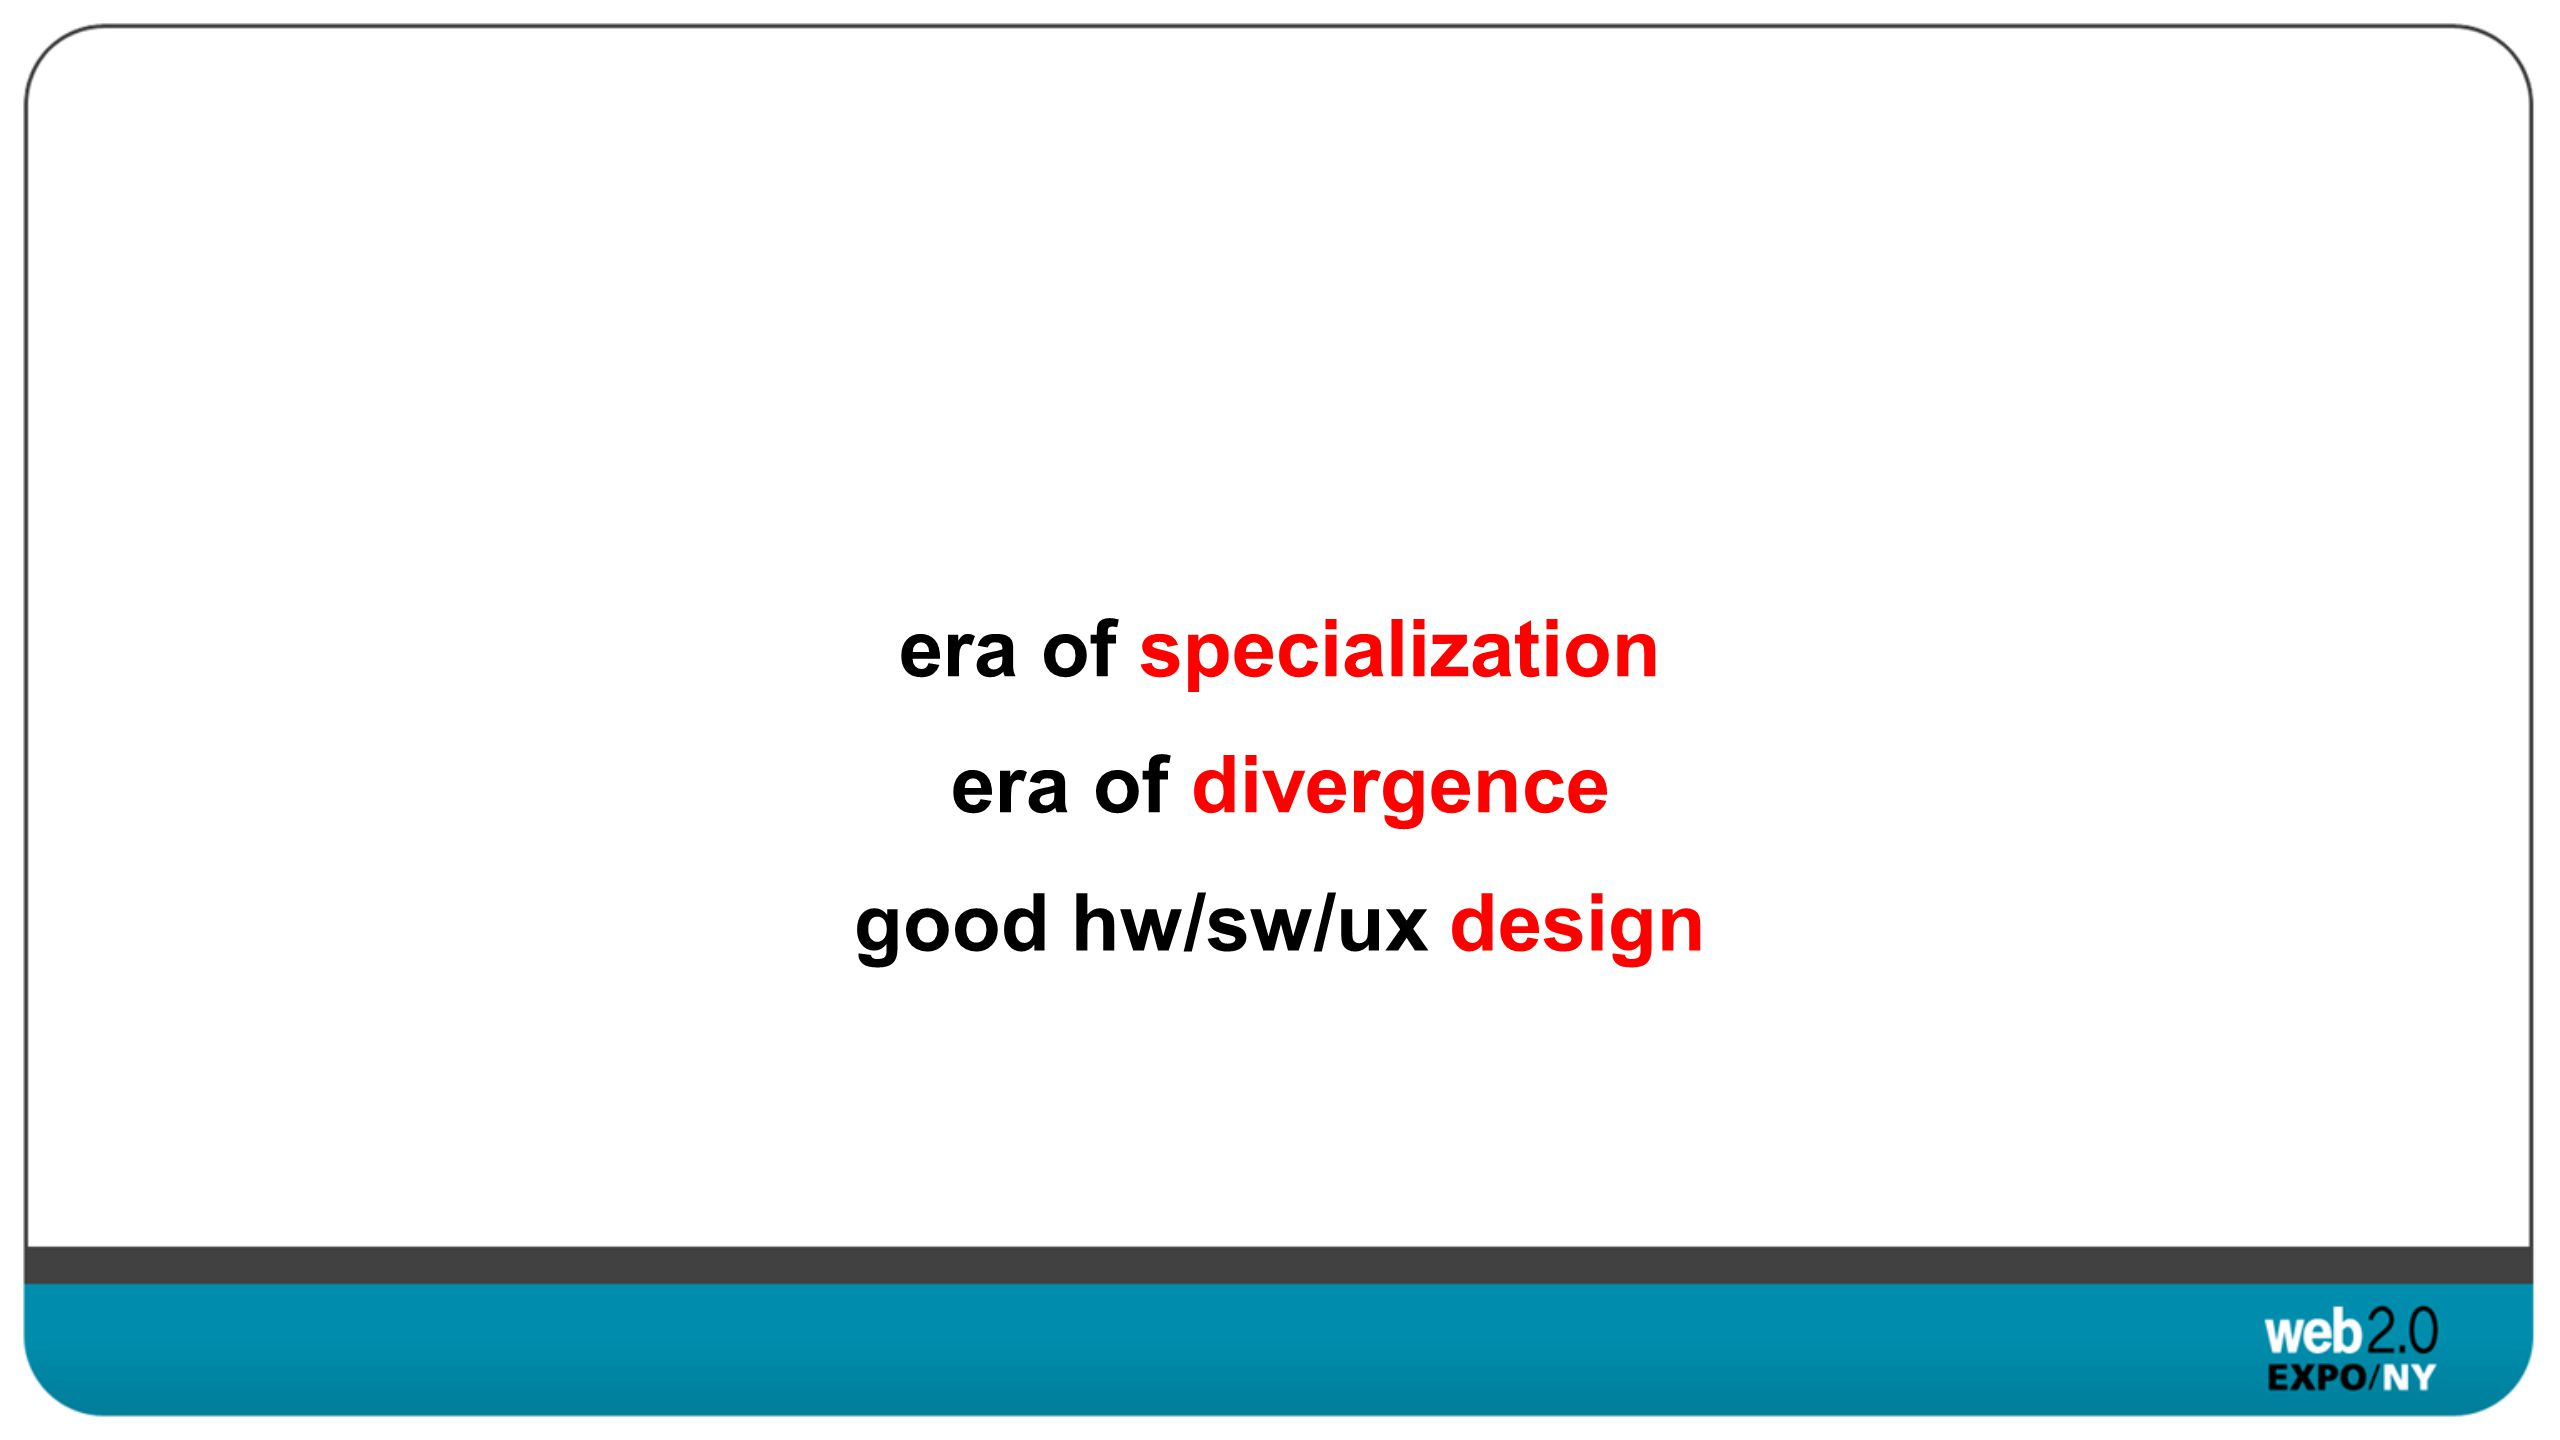 era of specialization era of divergence good hw/sw/ux design